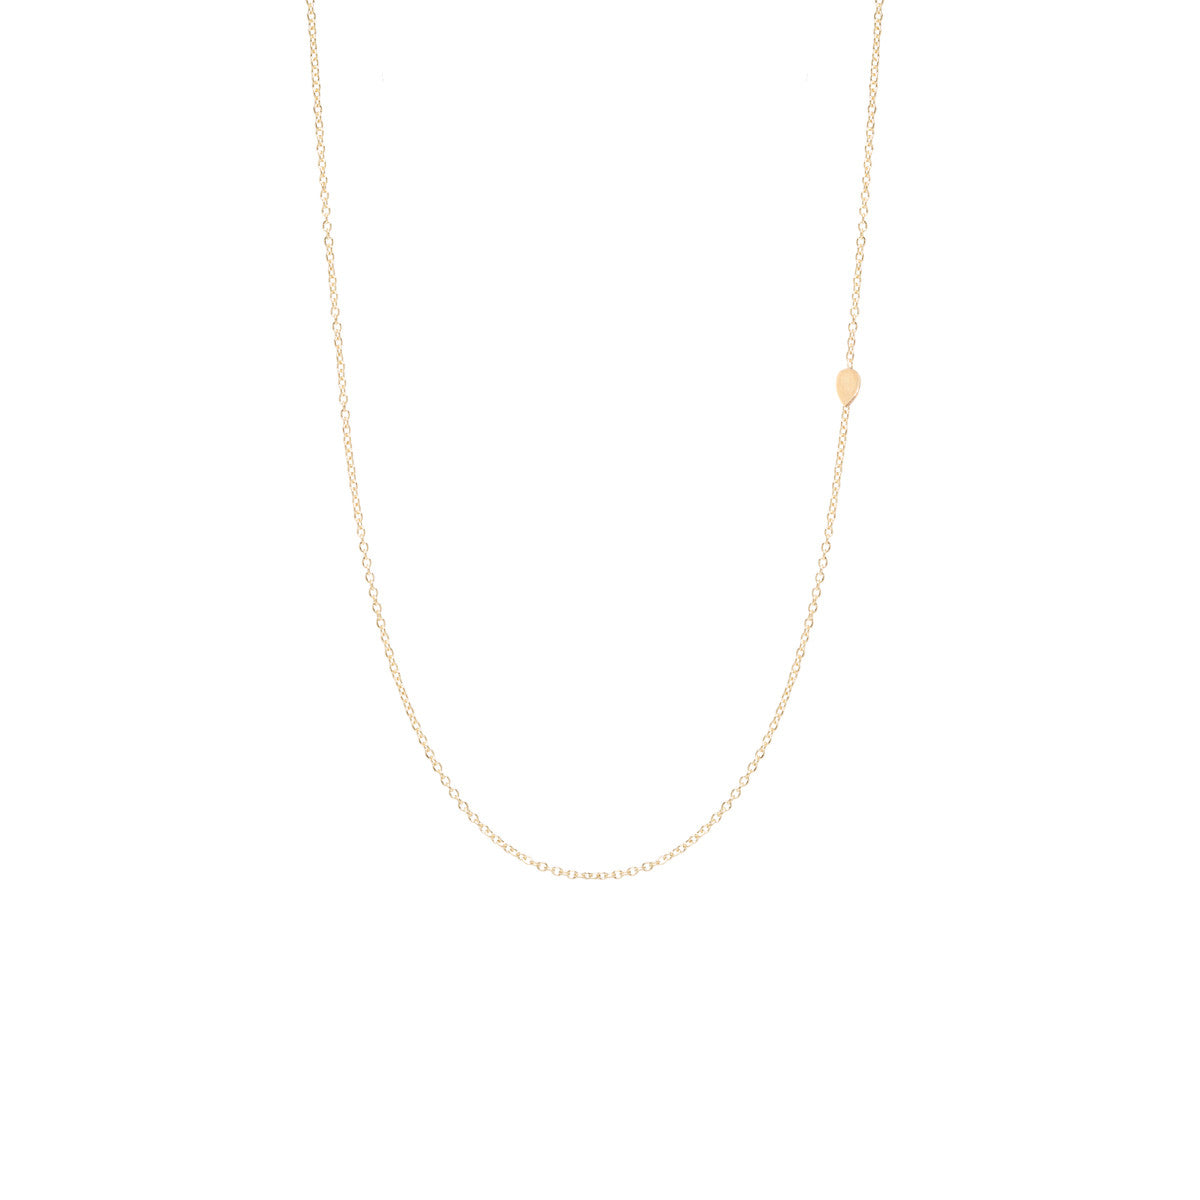 Zoë Chicco 14kt Yellow Gold Itty Bitty Off-Center Teardrop Necklace